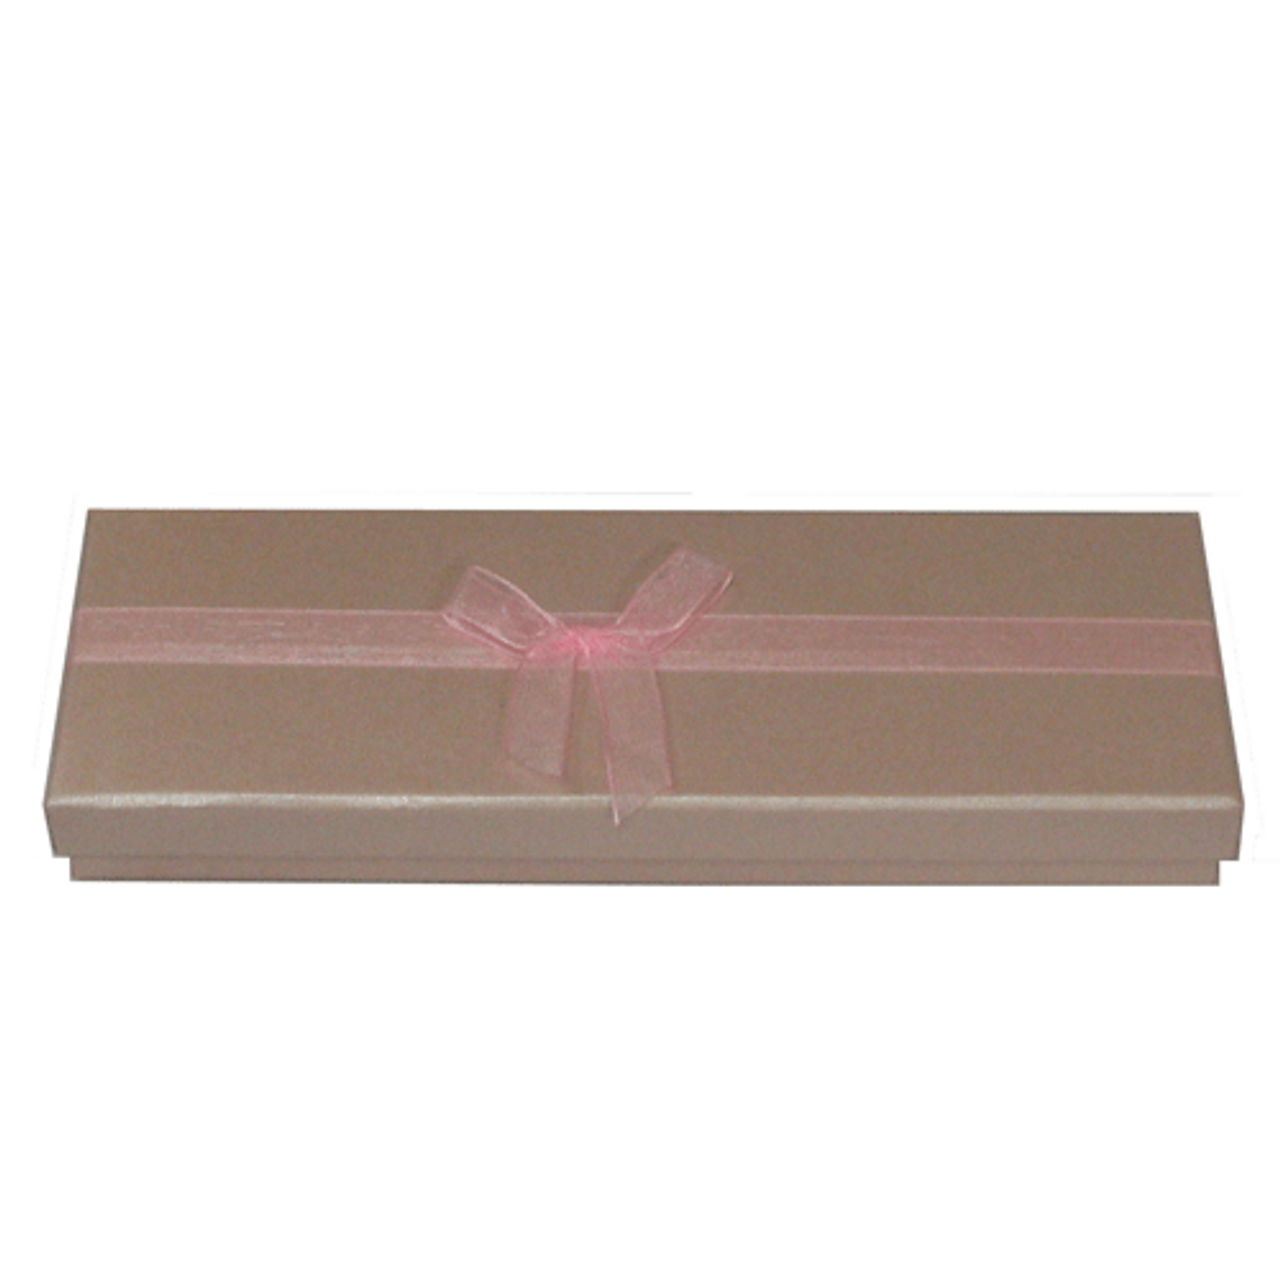 Shiny pink embossed 2-piece paper box with pink organza ribbon 4